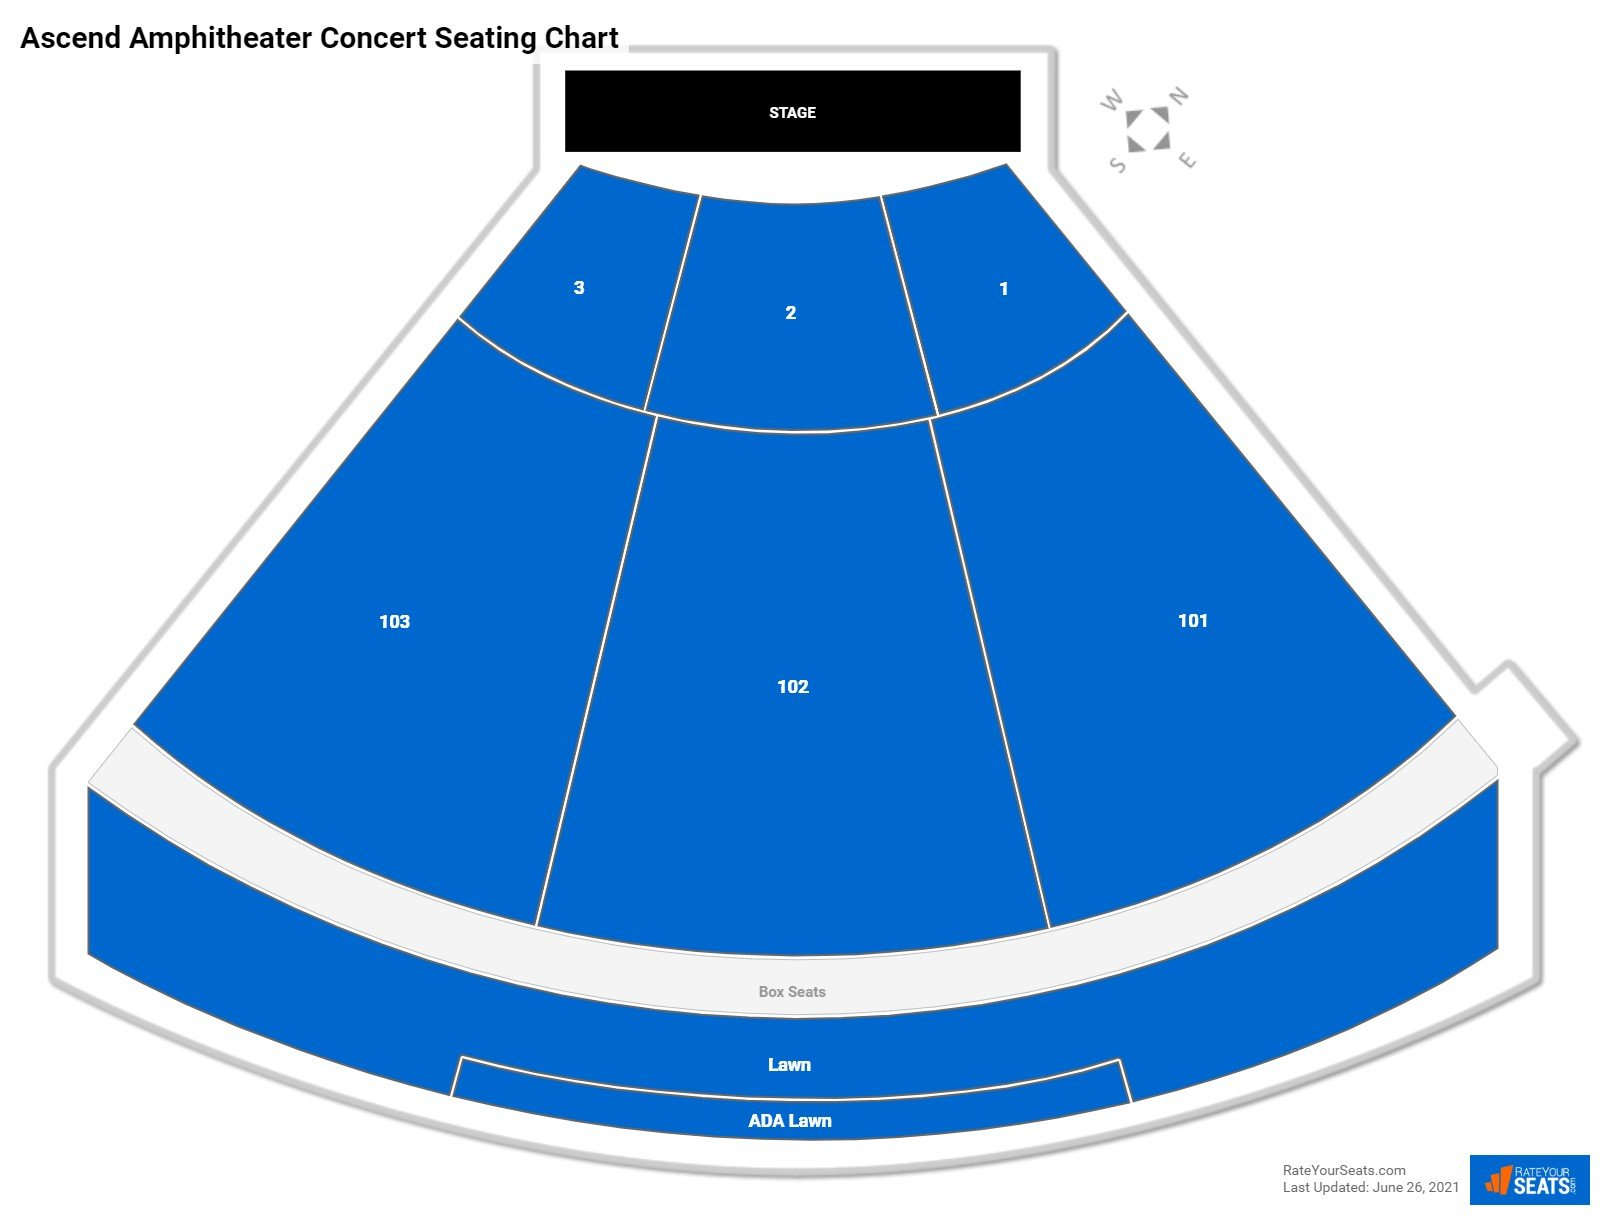 Ascend Amphitheater Seating Chart